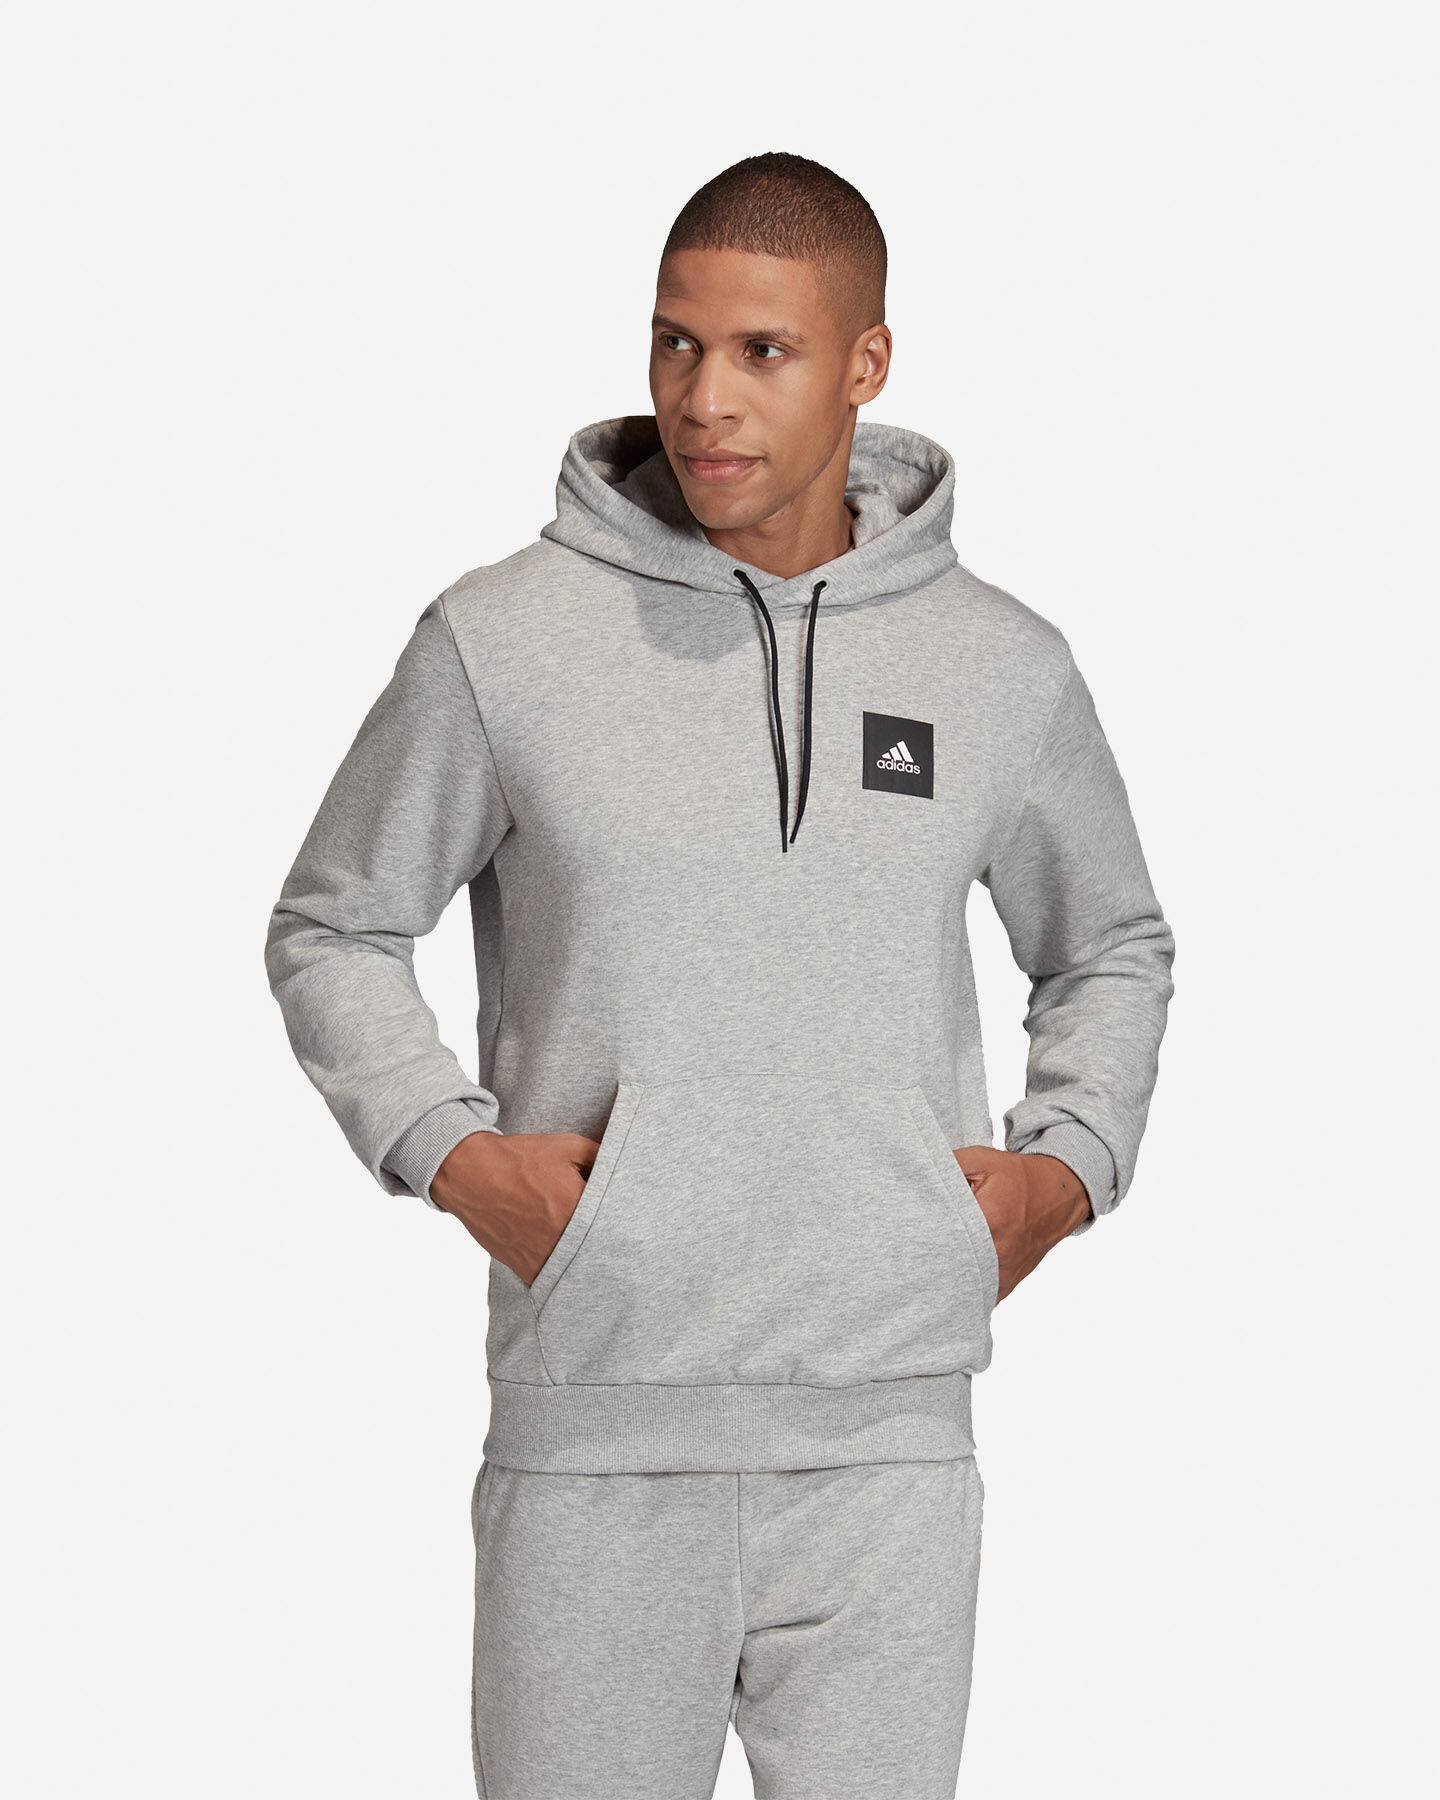 Felpa ADIDAS MUST HAVE ENCH M S5153855 scatto 2